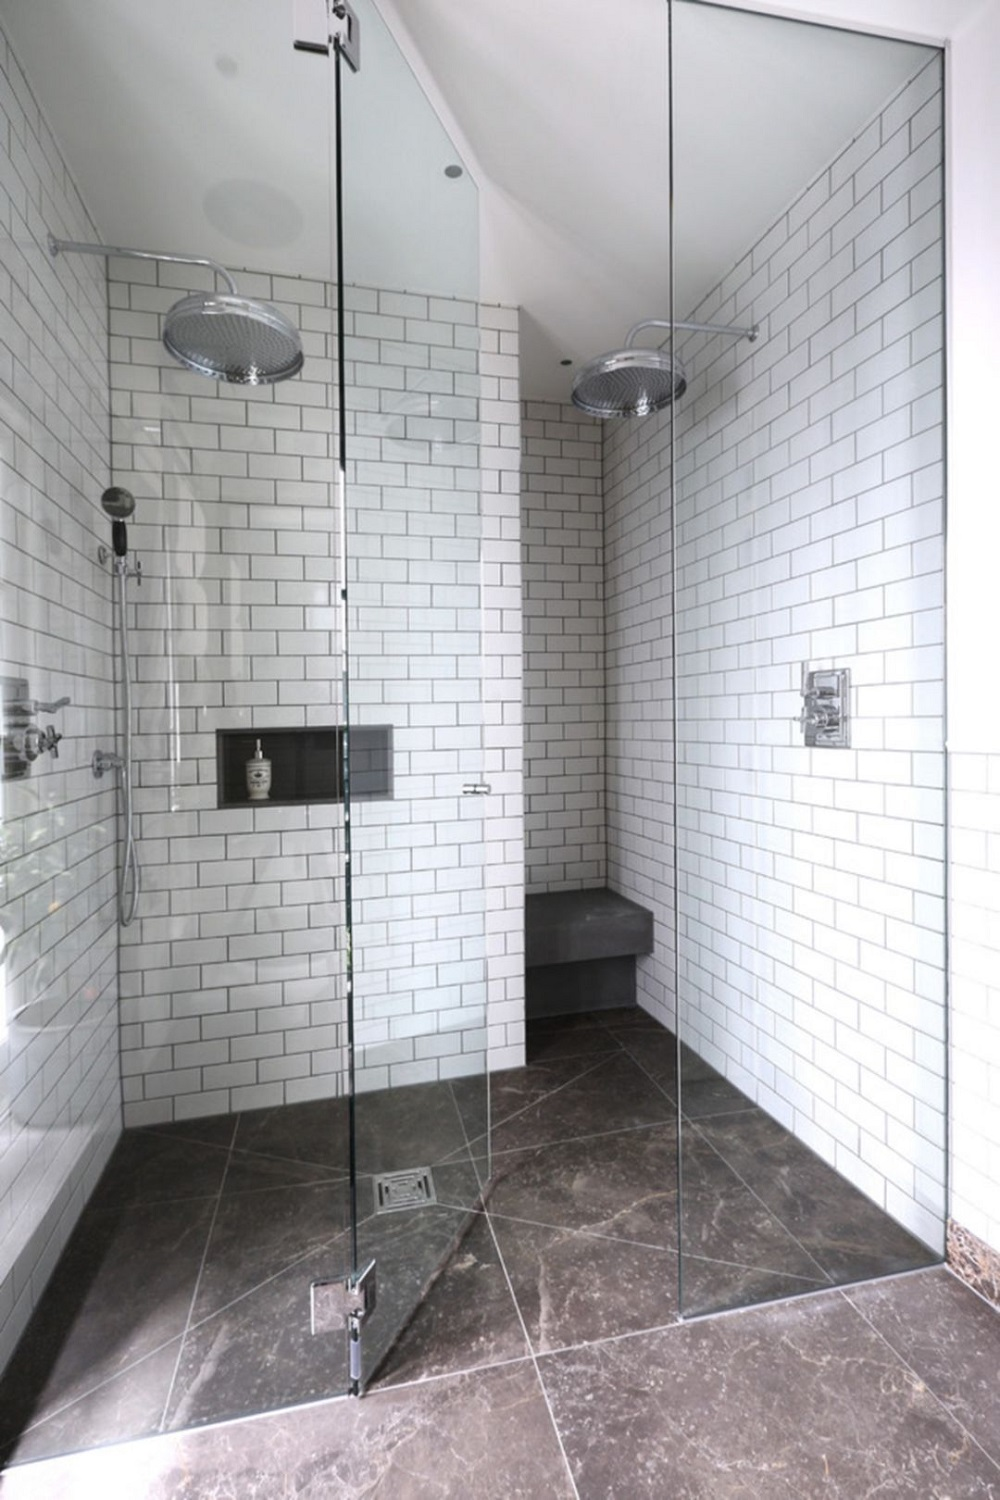 wb19 Awesome looking shower tile ideas and designs to check out